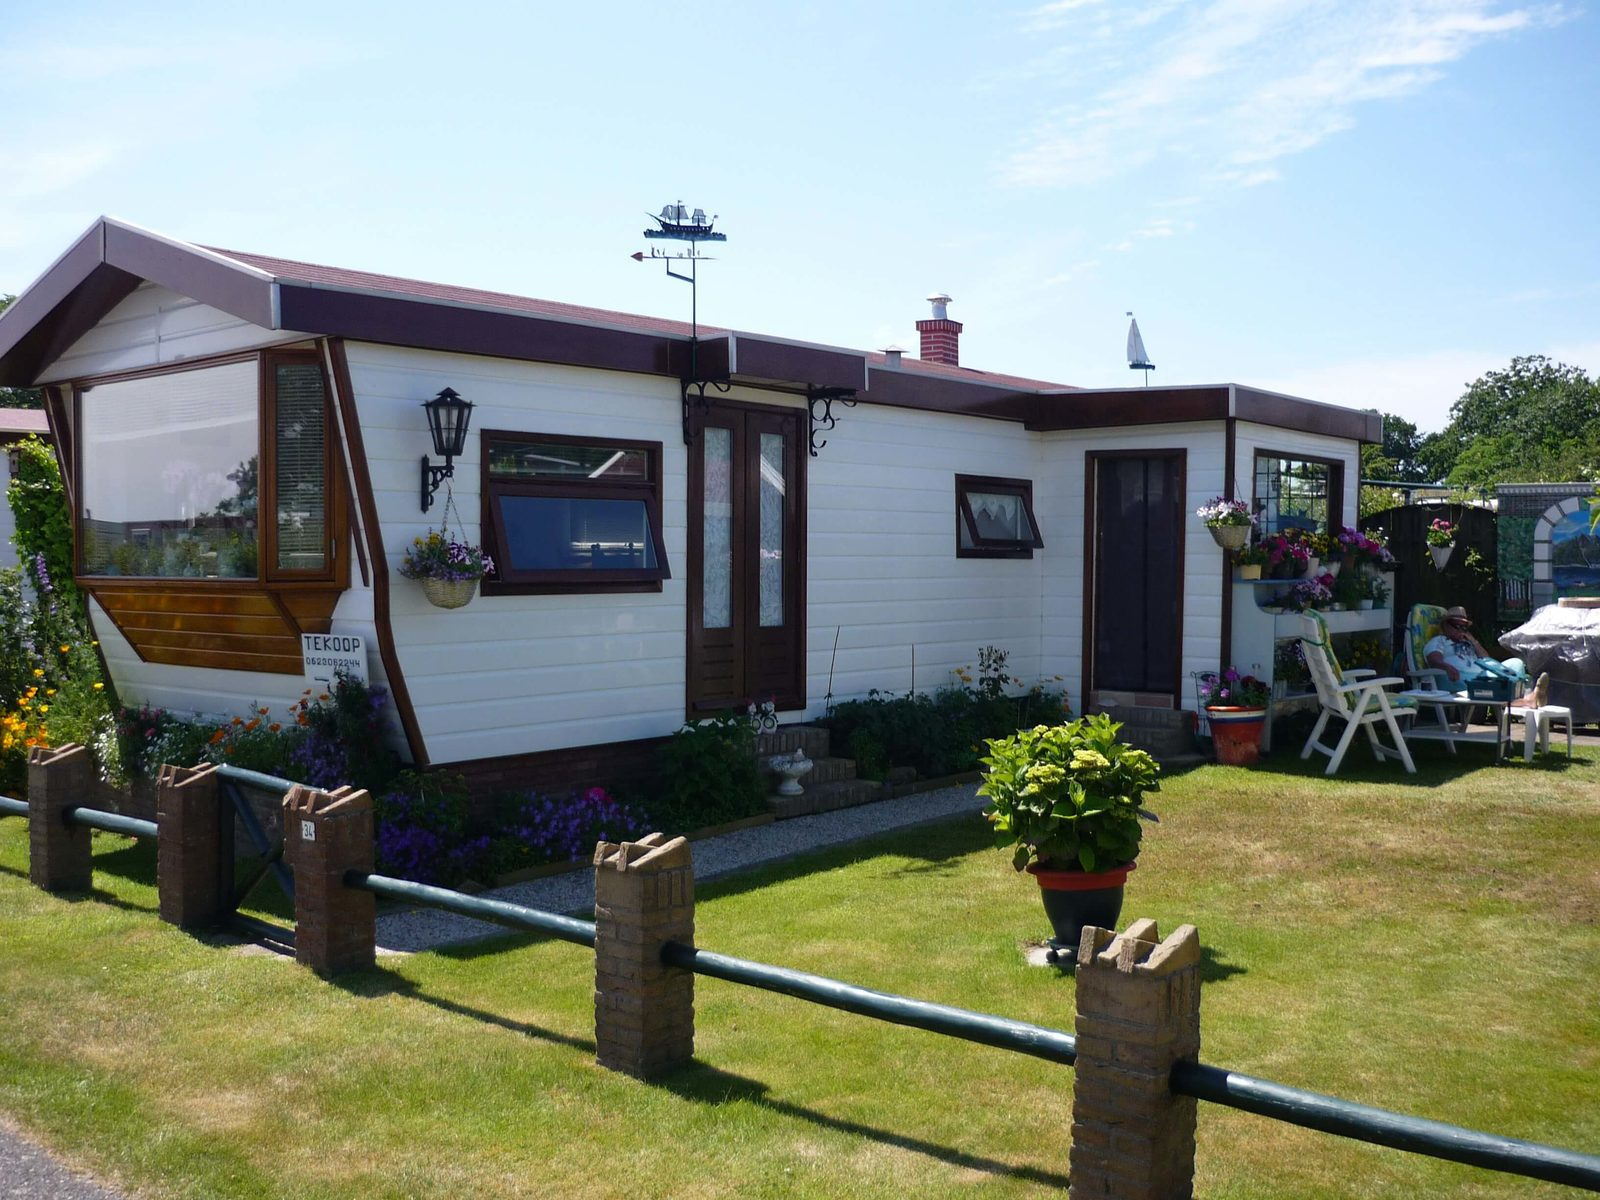 Mobil home gebraucht kaufen mobil home occasion drome 26